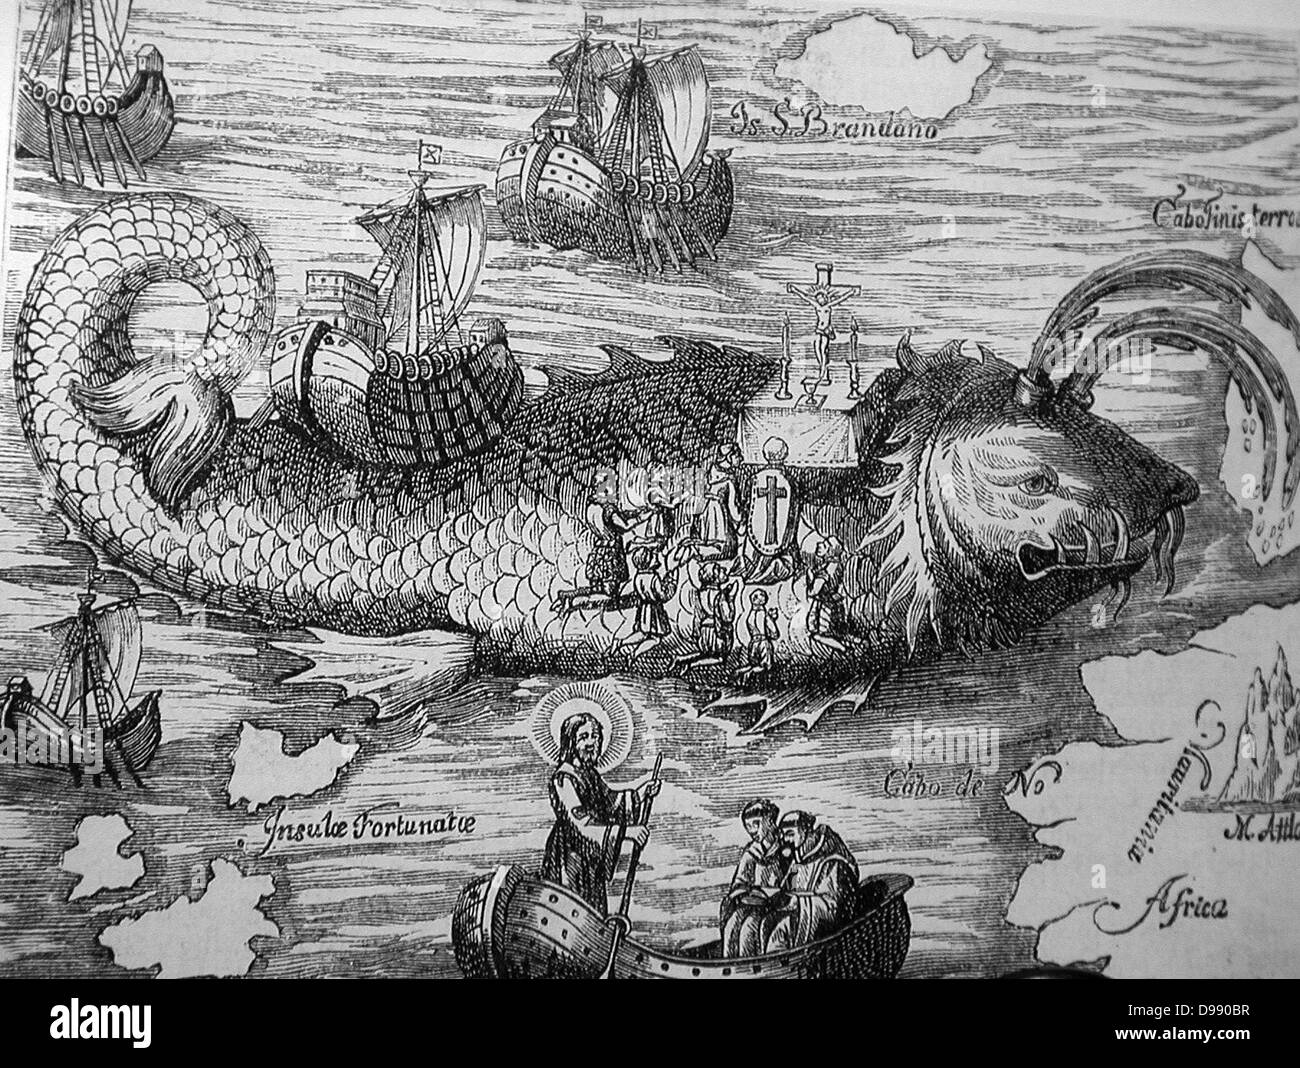 St Brendan and the whale from a 16th century engraving  Saint Brendan of Clonfert or Bréanainn of Clonfert - Stock Image